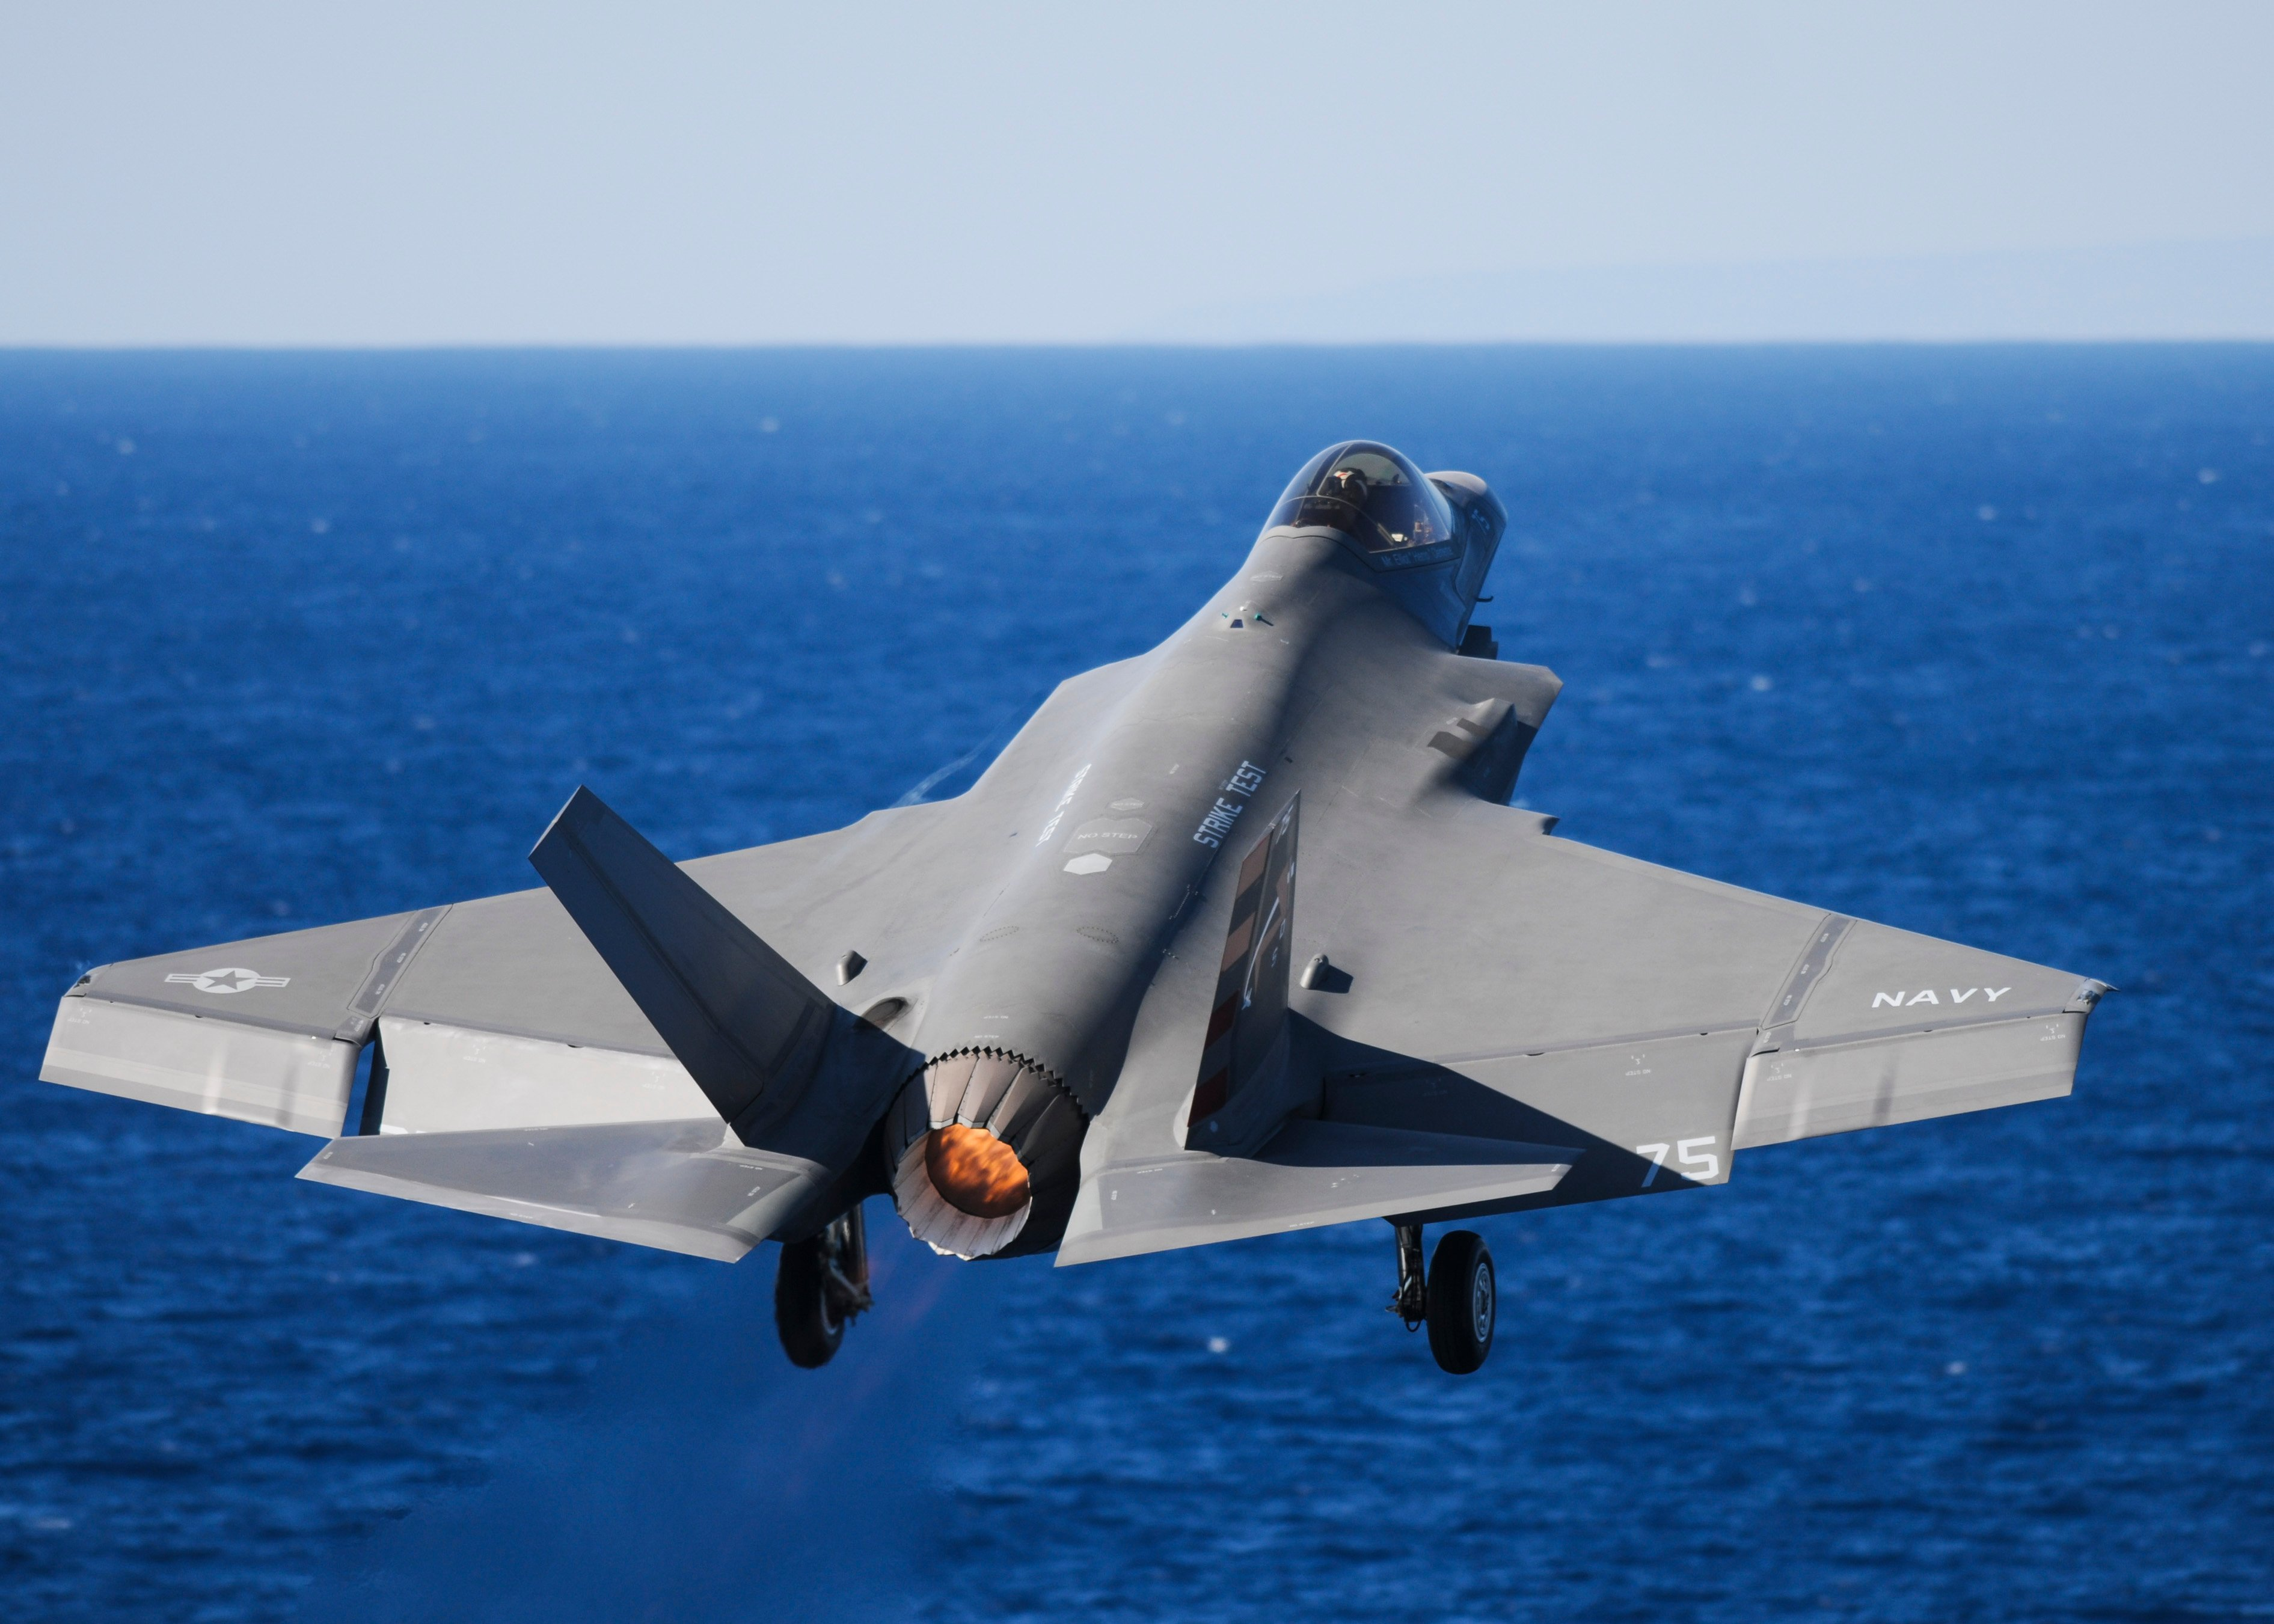 jet drone with Mabus F 35c Will Be Last Manned Strike Fighter The Navy Marines Will Ever Buy Or Fly on 1935 also Mabus F 35c Will Be Last Manned Strike Fighter The Navy Marines Will Ever Buy Or Fly together with Freeware Fsx Me 264 additionally Bart Jansen L Homme Qui Transforme Des Animaux En Appareils Volants moreover Convair F 106 Delta Dart.